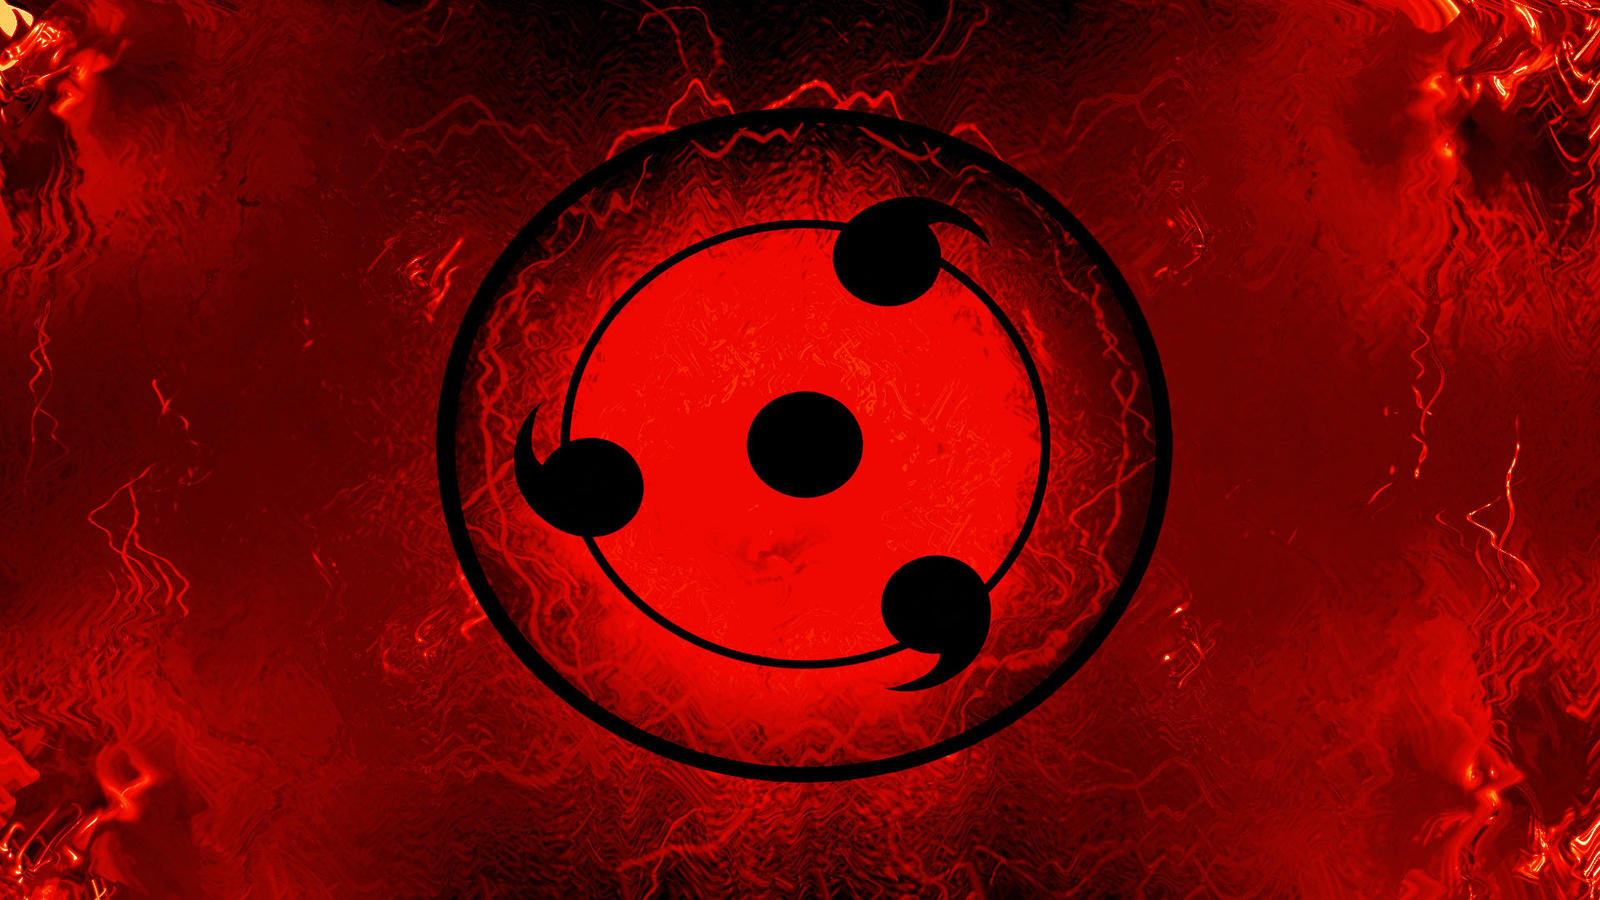 Naruto Sharingan Wallpaper by Staytha on DeviantArt